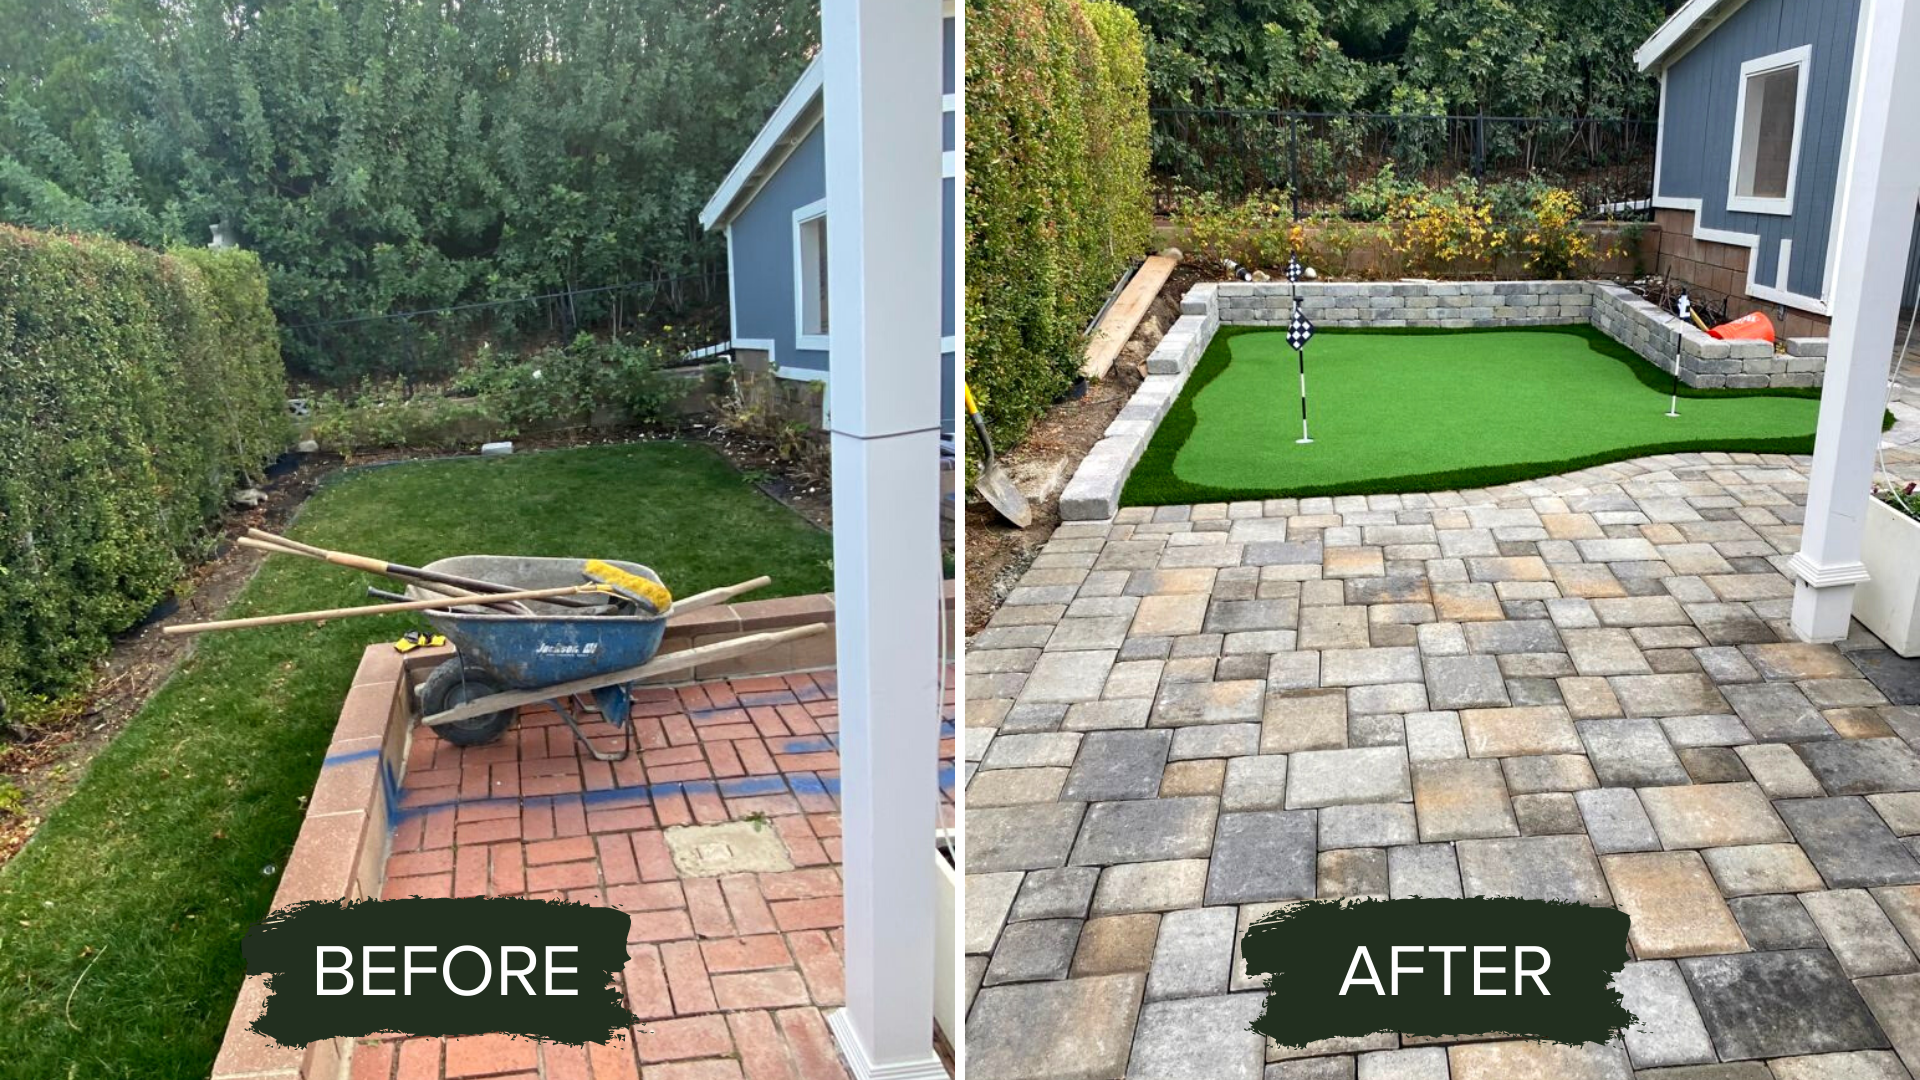 BEFORE AND AFTER BACKYARD PUTTING GREEN